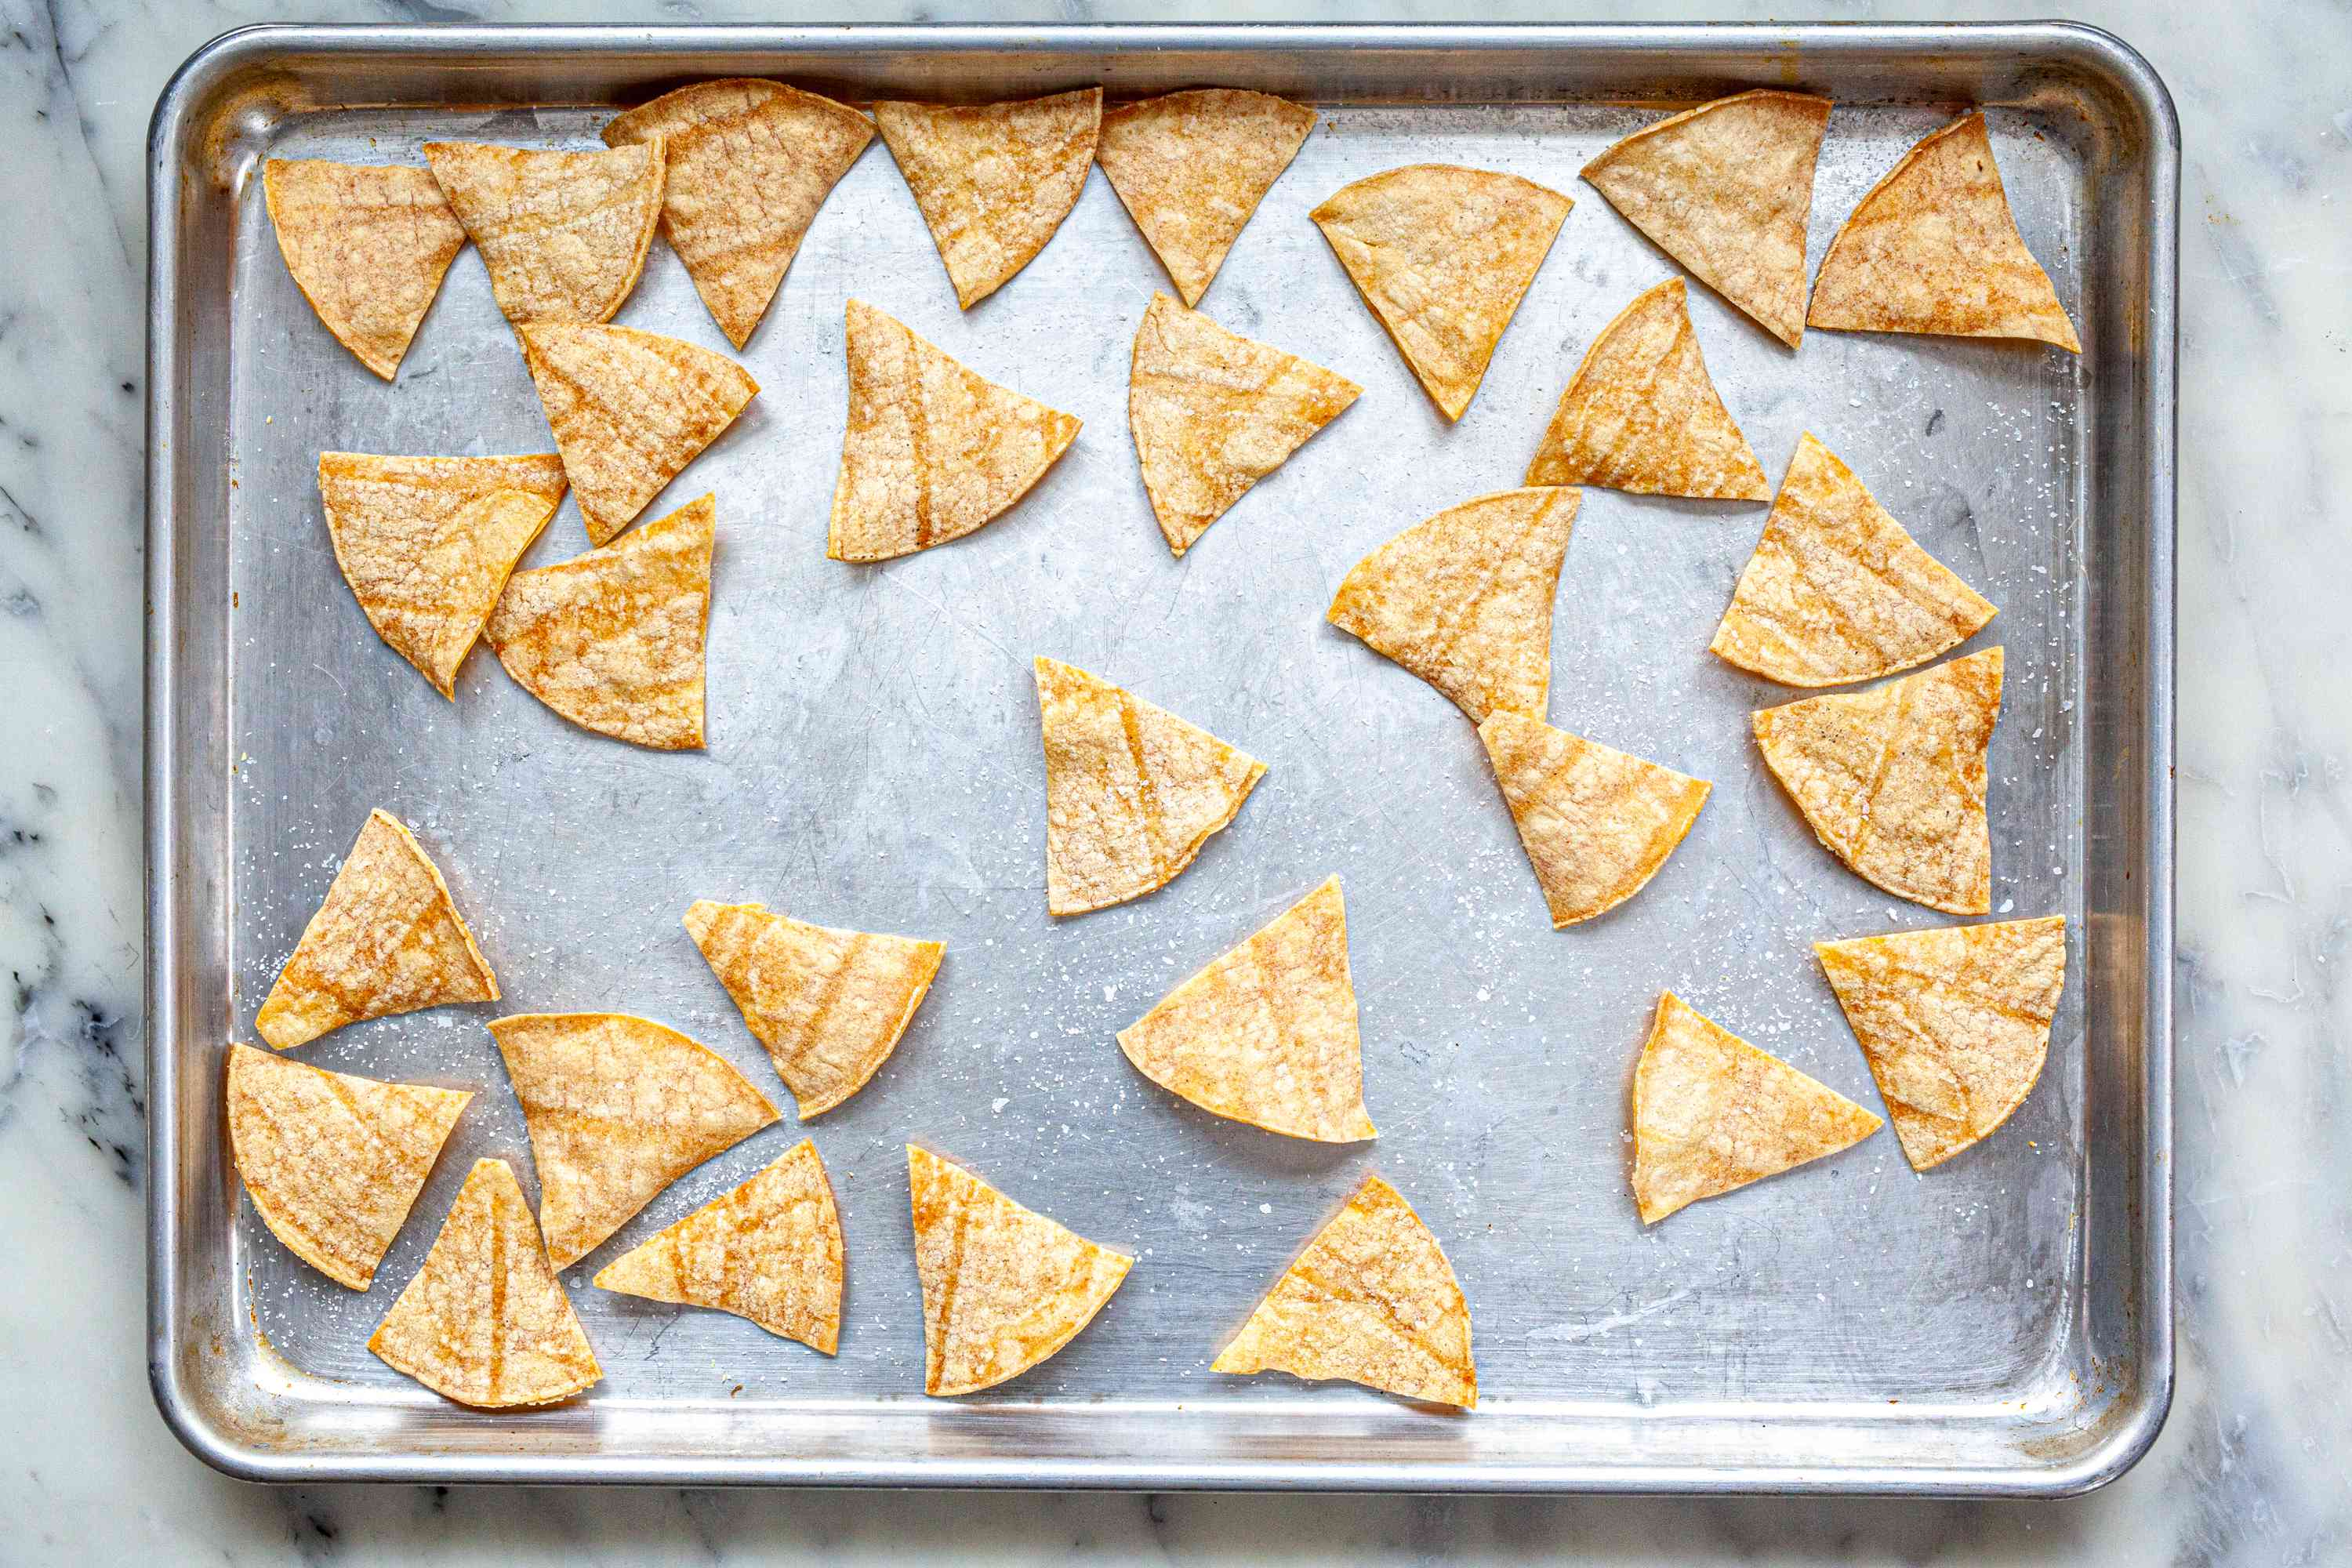 A sheet pan with crispy tortilla chips on it.